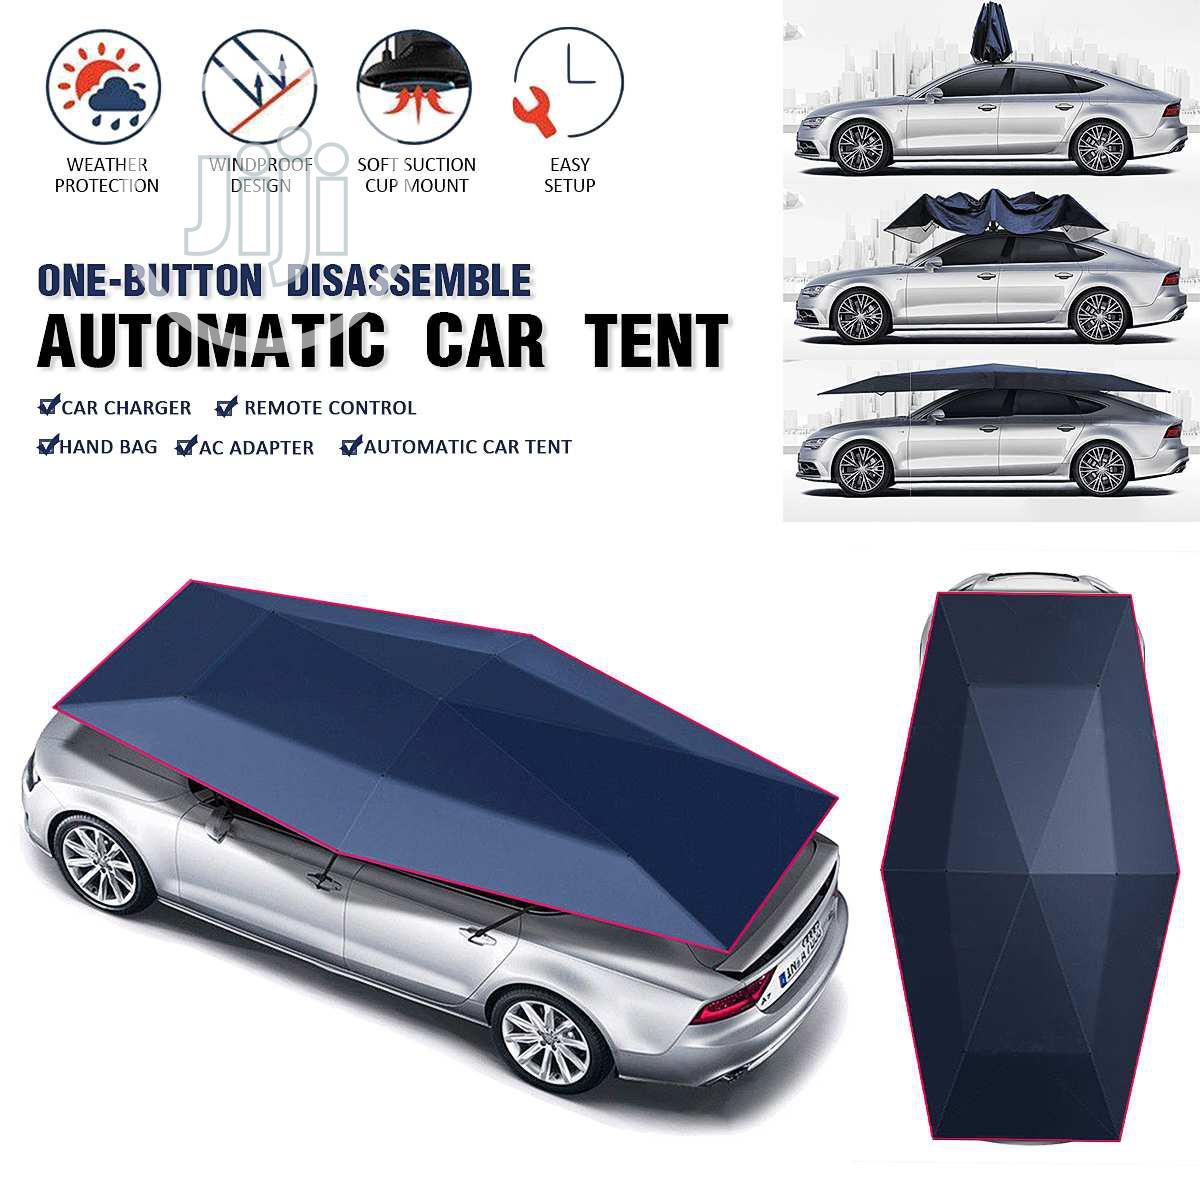 Remote Control Automatic Tent Waterproof Car Umbrella | Vehicle Parts & Accessories for sale in Surulere, Lagos State, Nigeria